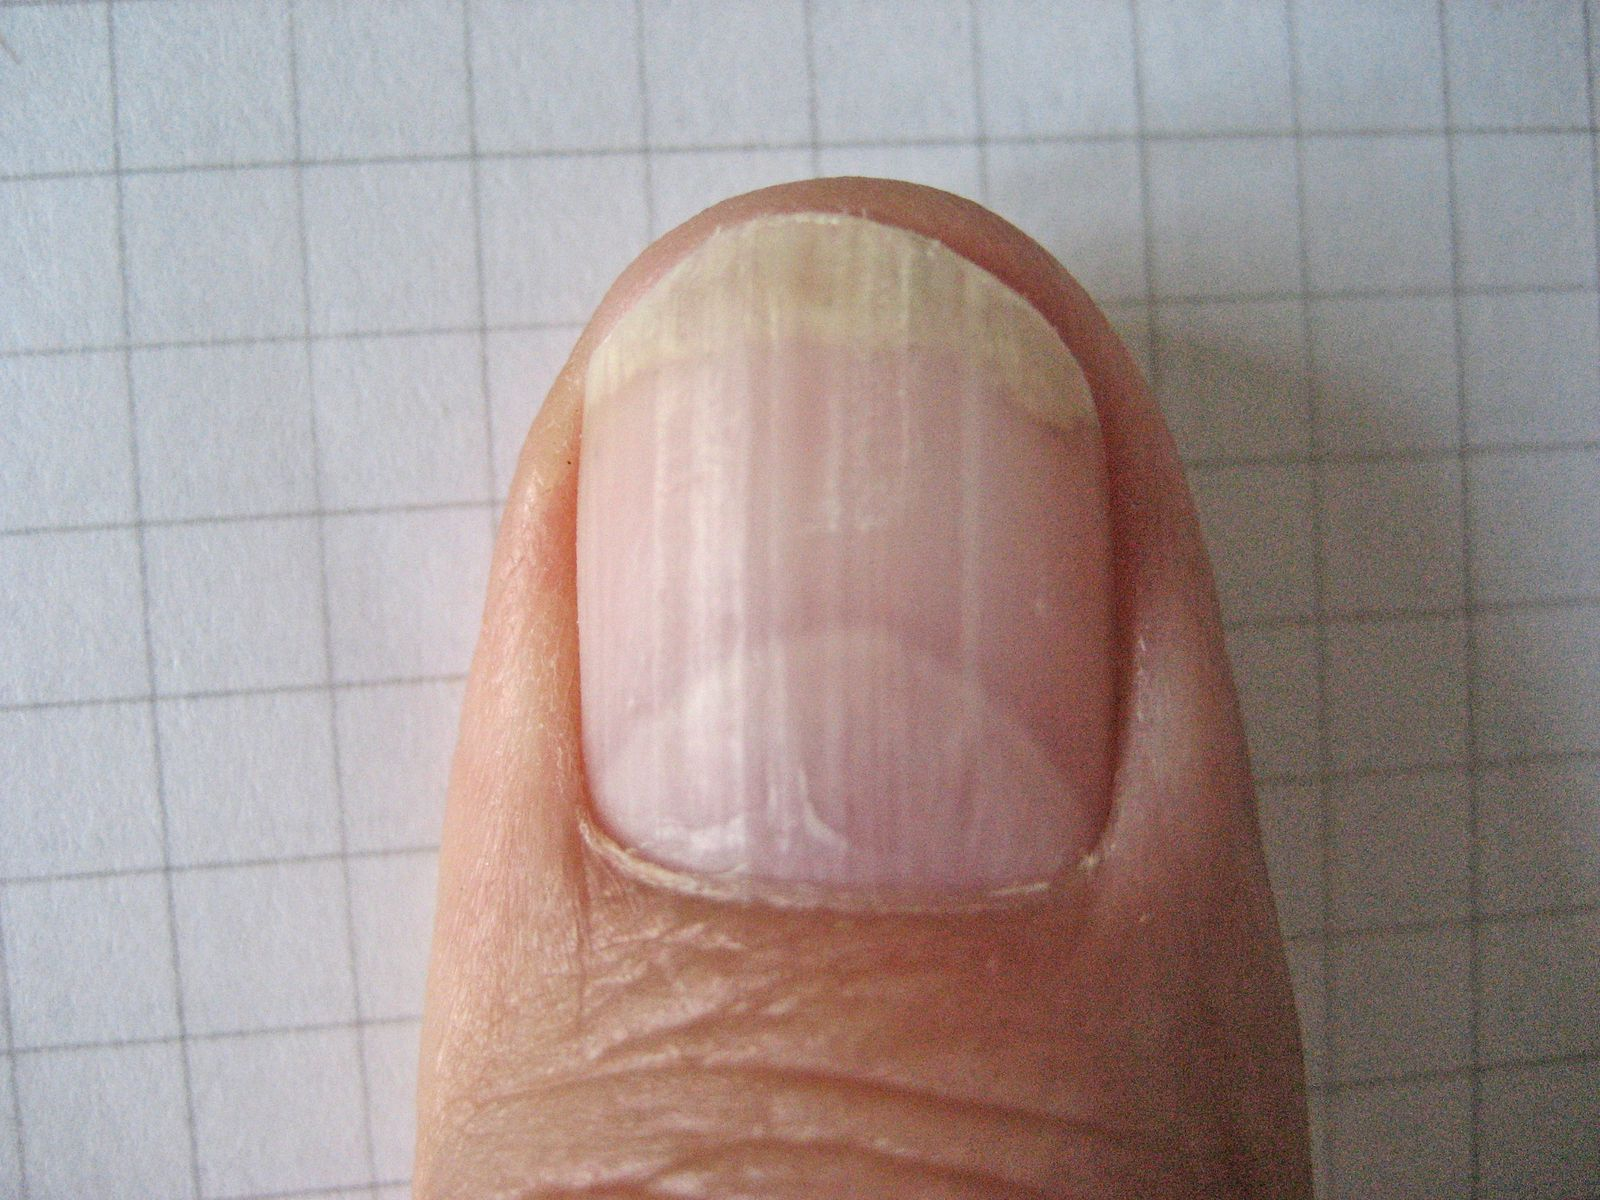 ongles-005-copie-1.JPG